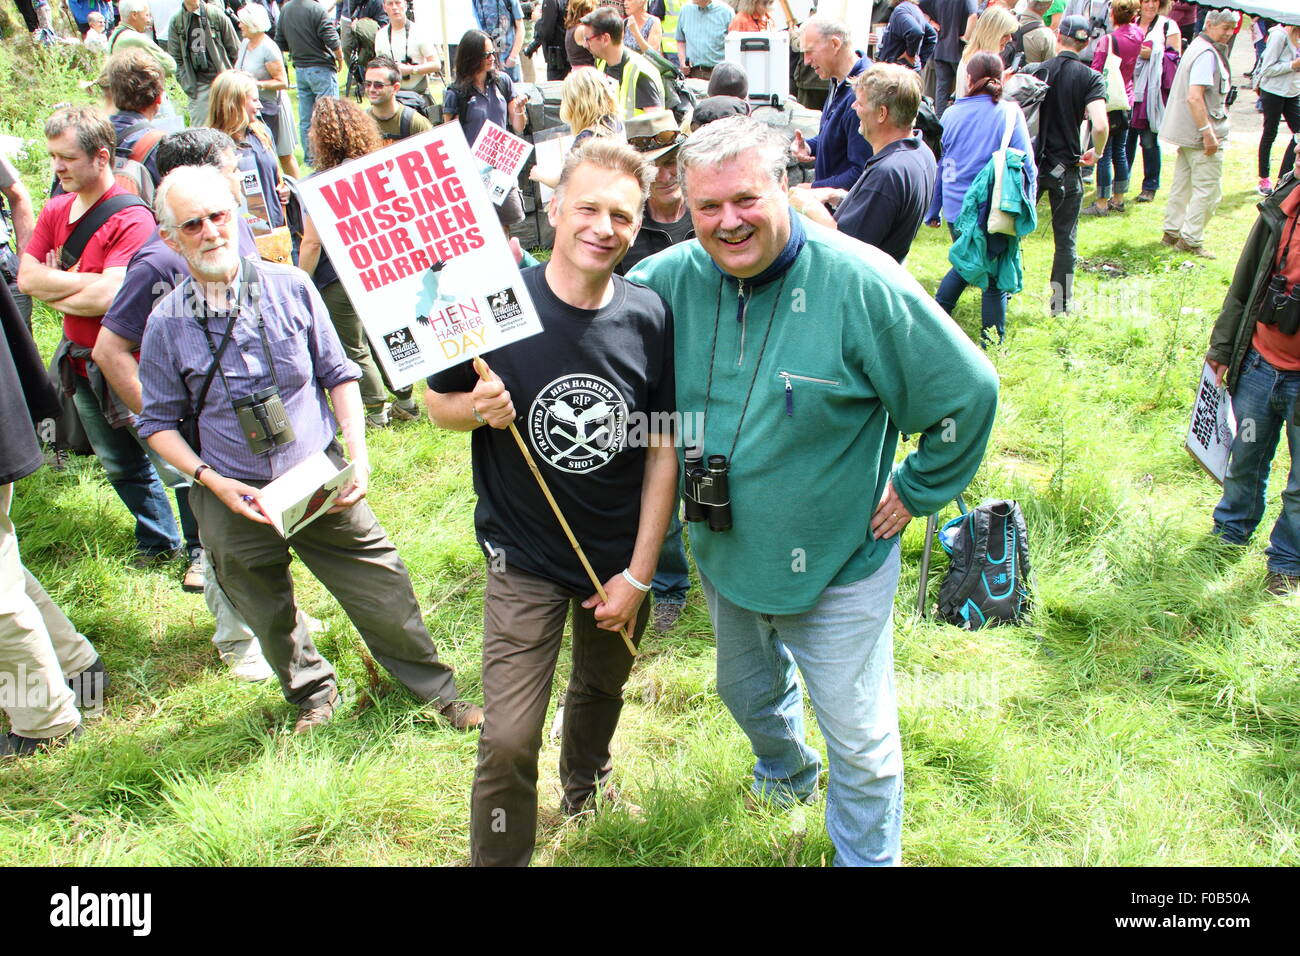 (l-r) Broadcaster, Chris Pckham and environmentalist, Mark Avery head up a Hen Harrier Day protest in the Peak District, - Stock Image